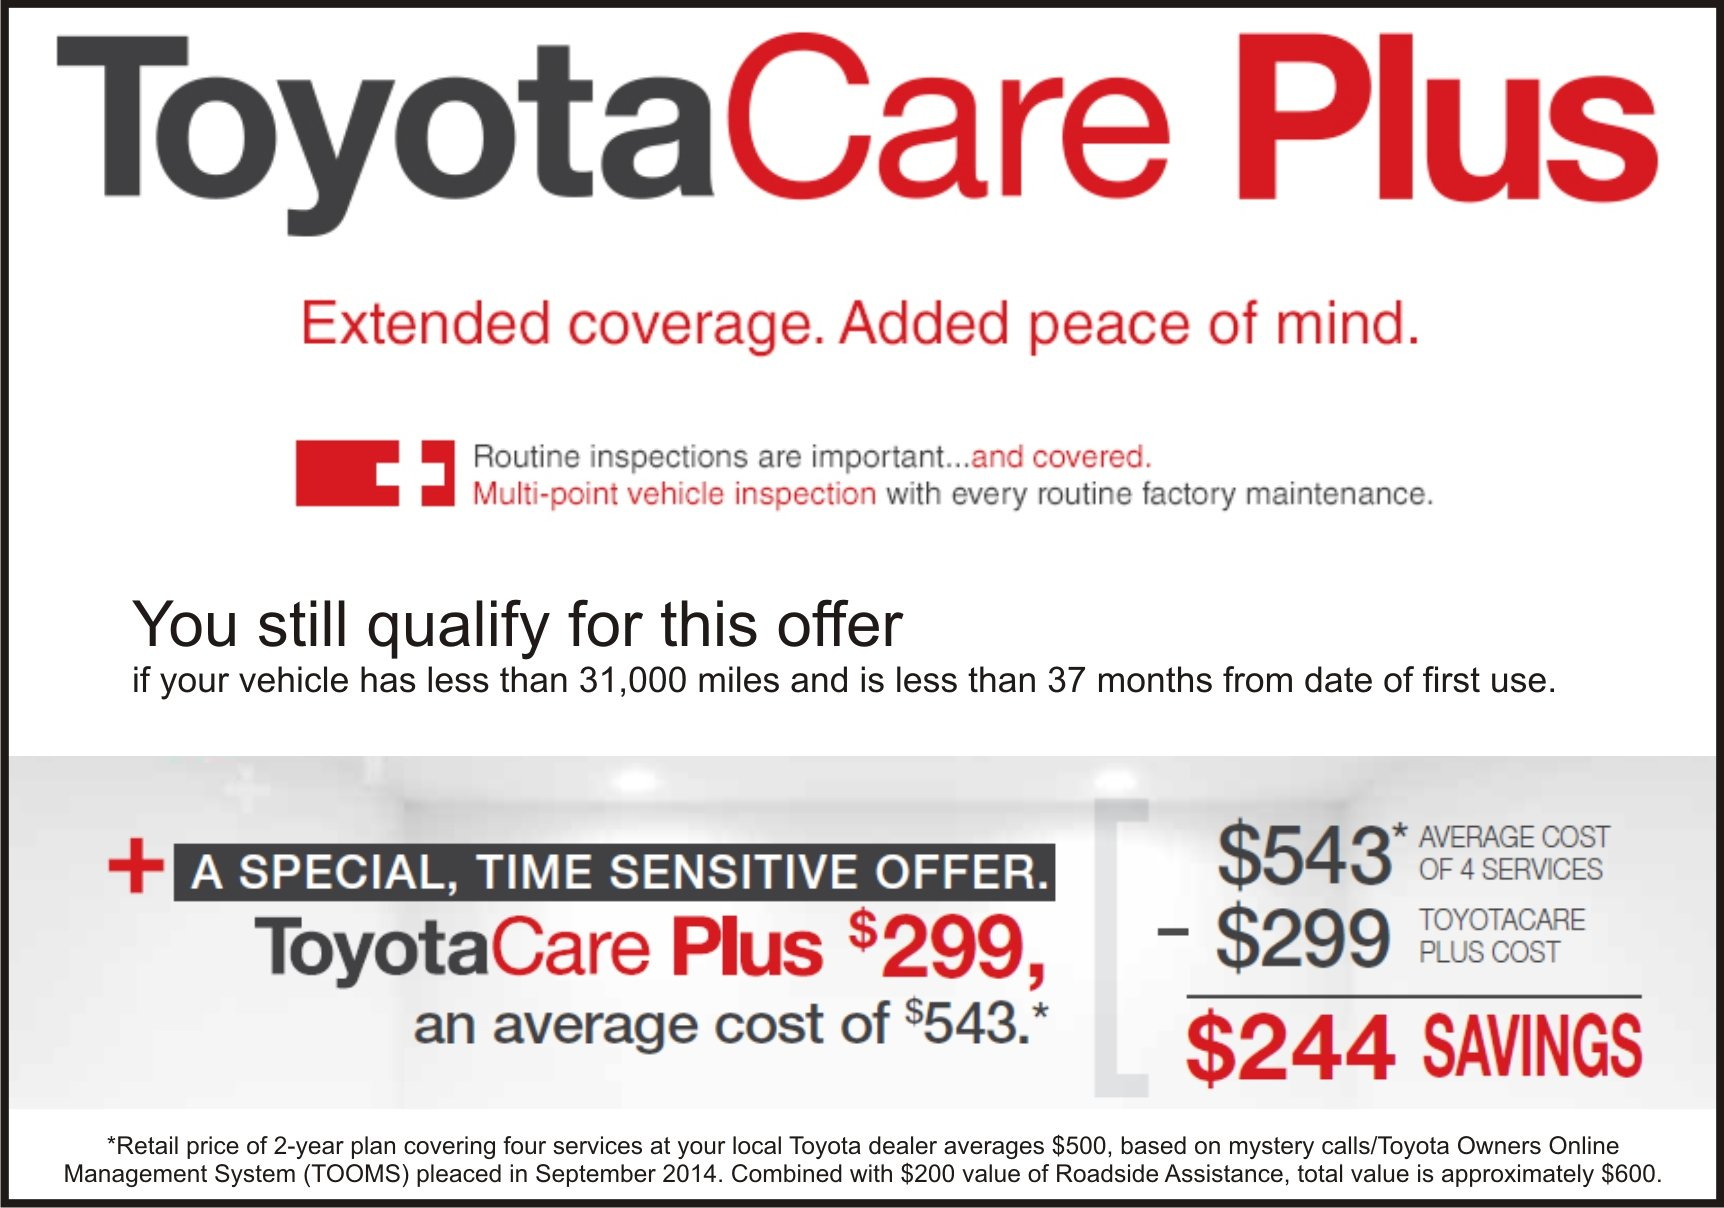 Get ToyotaCare Plus for @299 and save an average of $244 on your Toyota services.